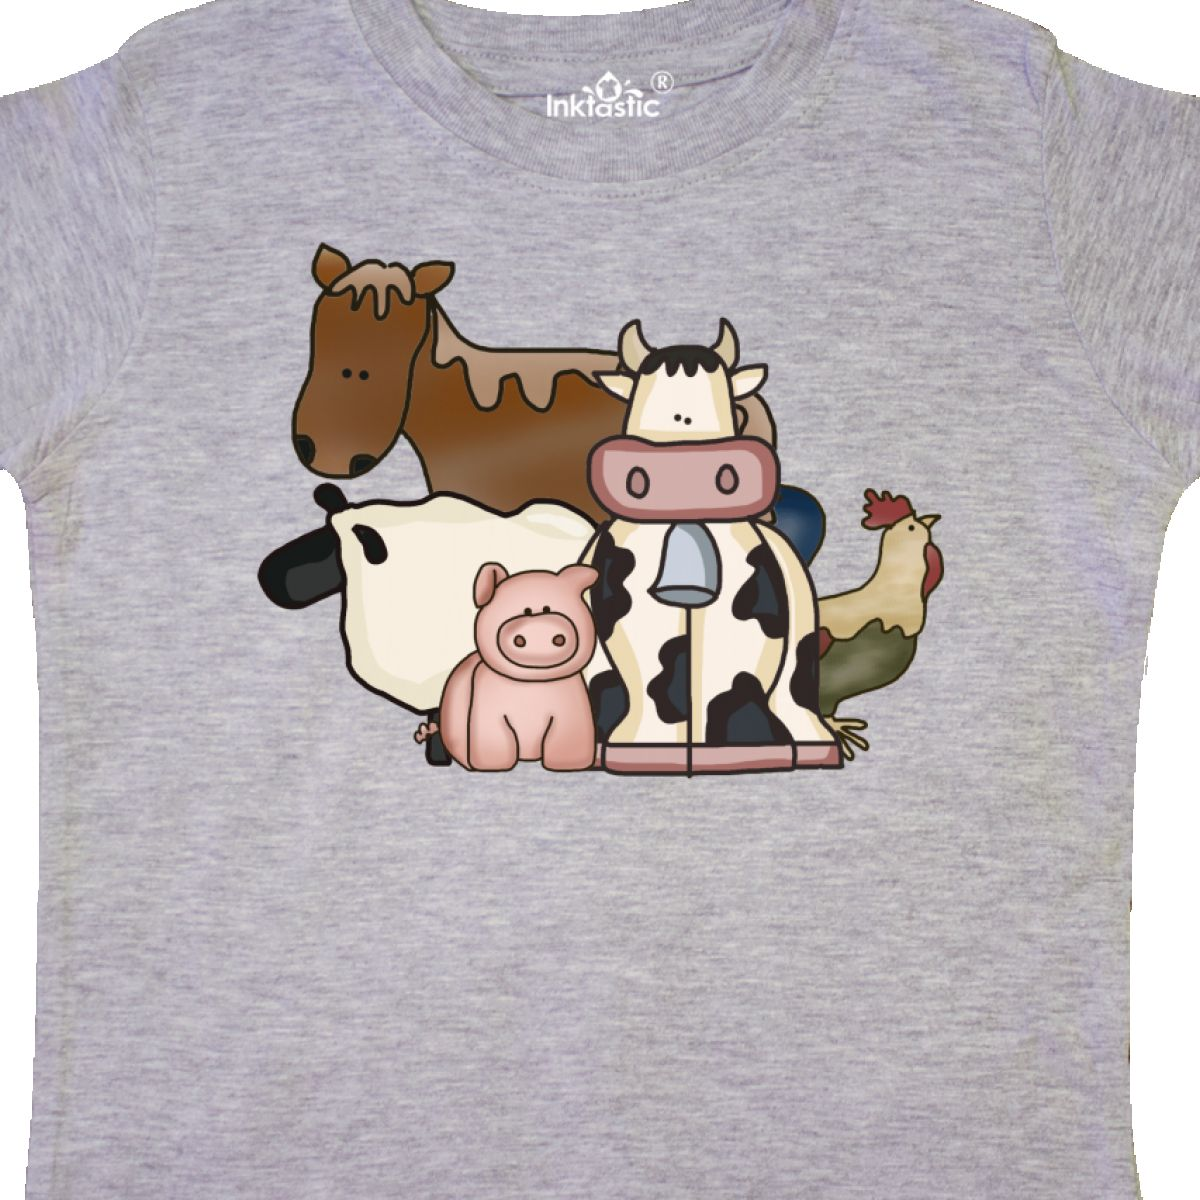 Inktastic-Critters-Toddler-T-Shirt-Horse-Sheep-Cow-Chicken-Pig-Farm-Animals-Gift thumbnail 10